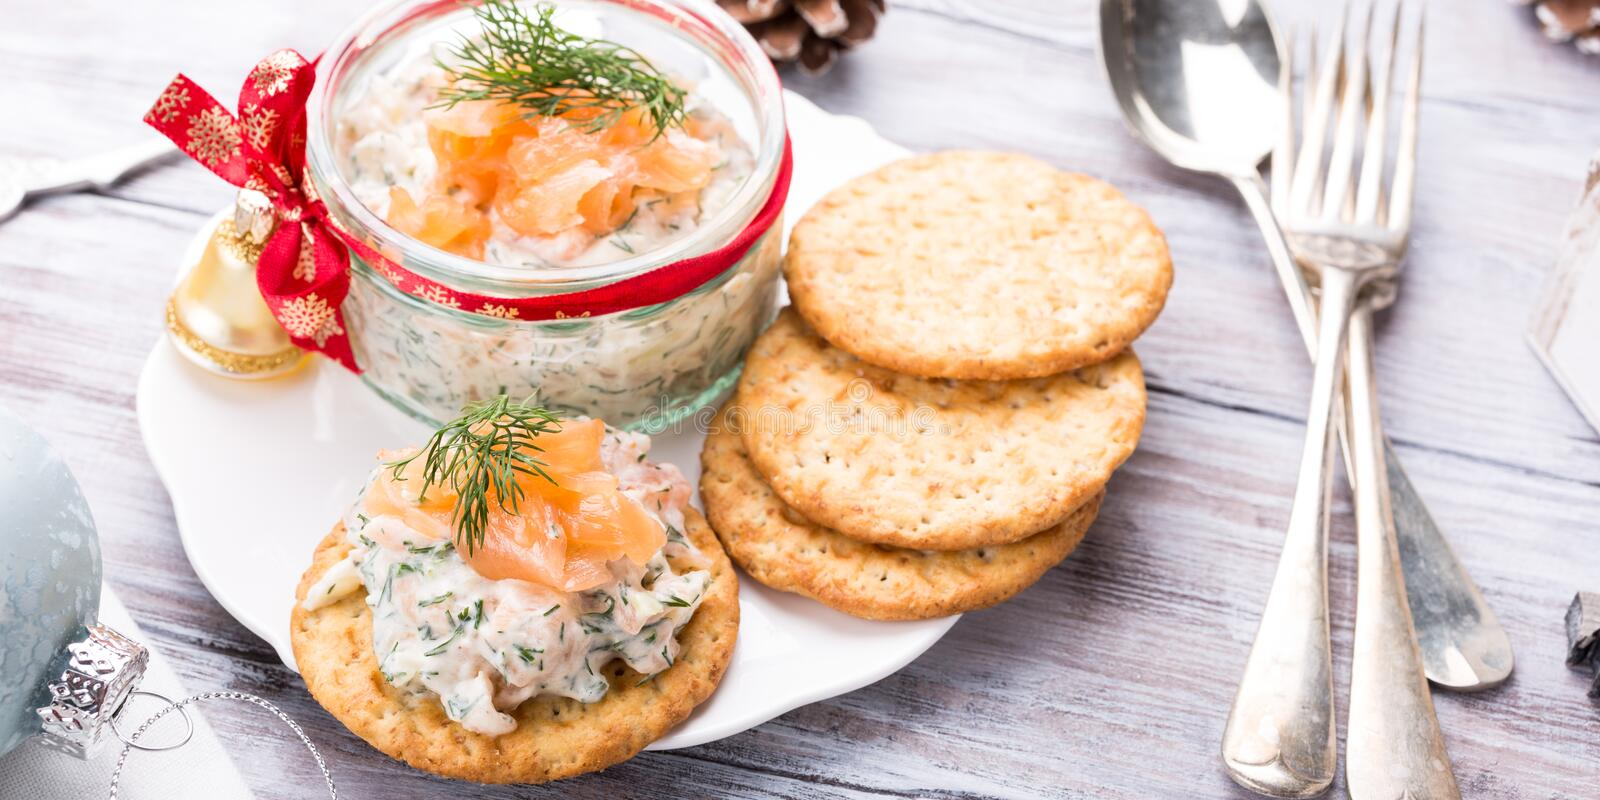 Smoked salmon, soft cheese and dill spread stock photo